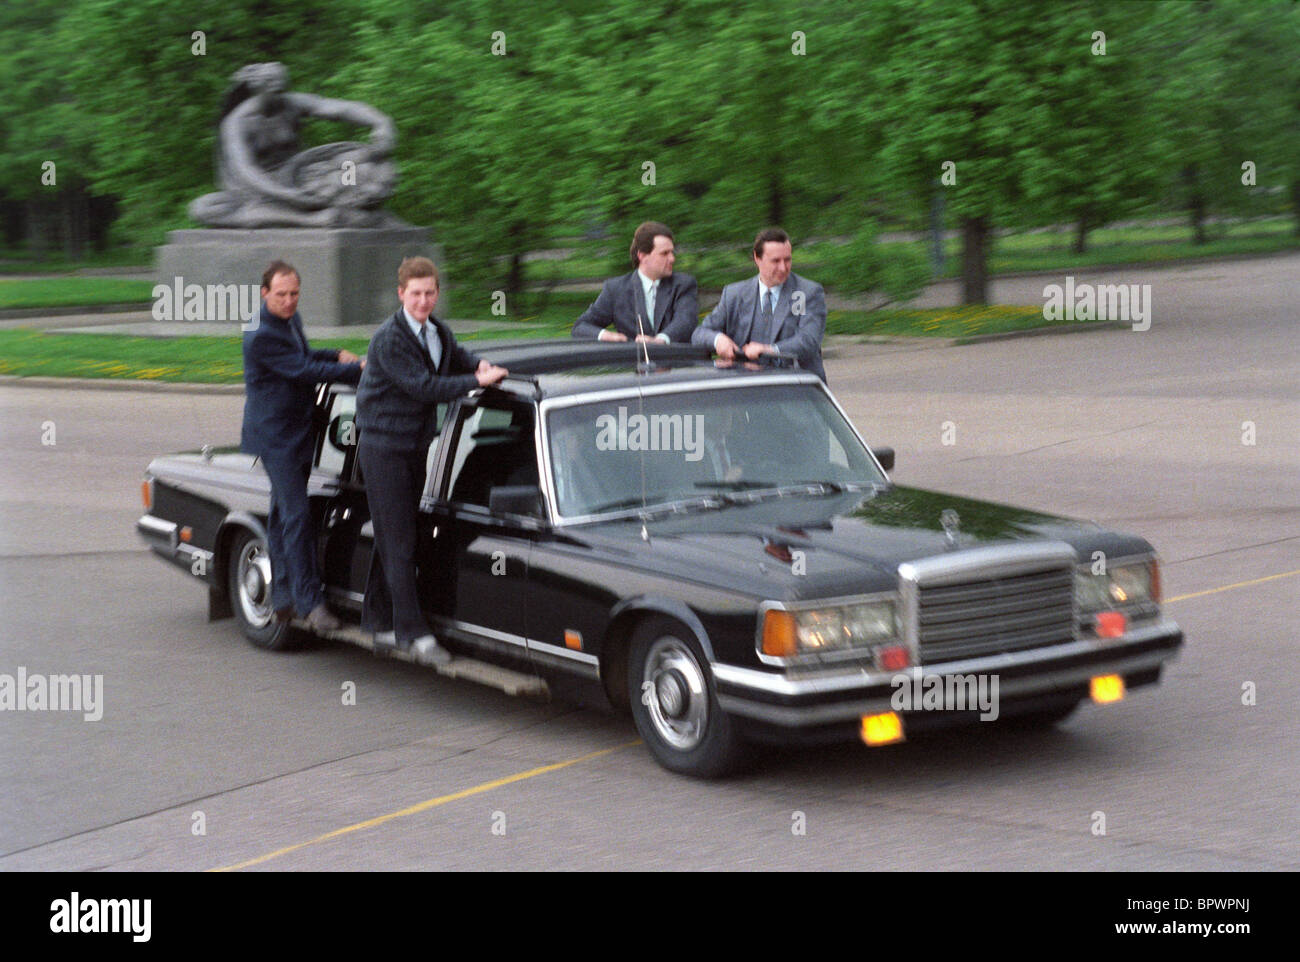 President security officers, 1991 - Stock Image